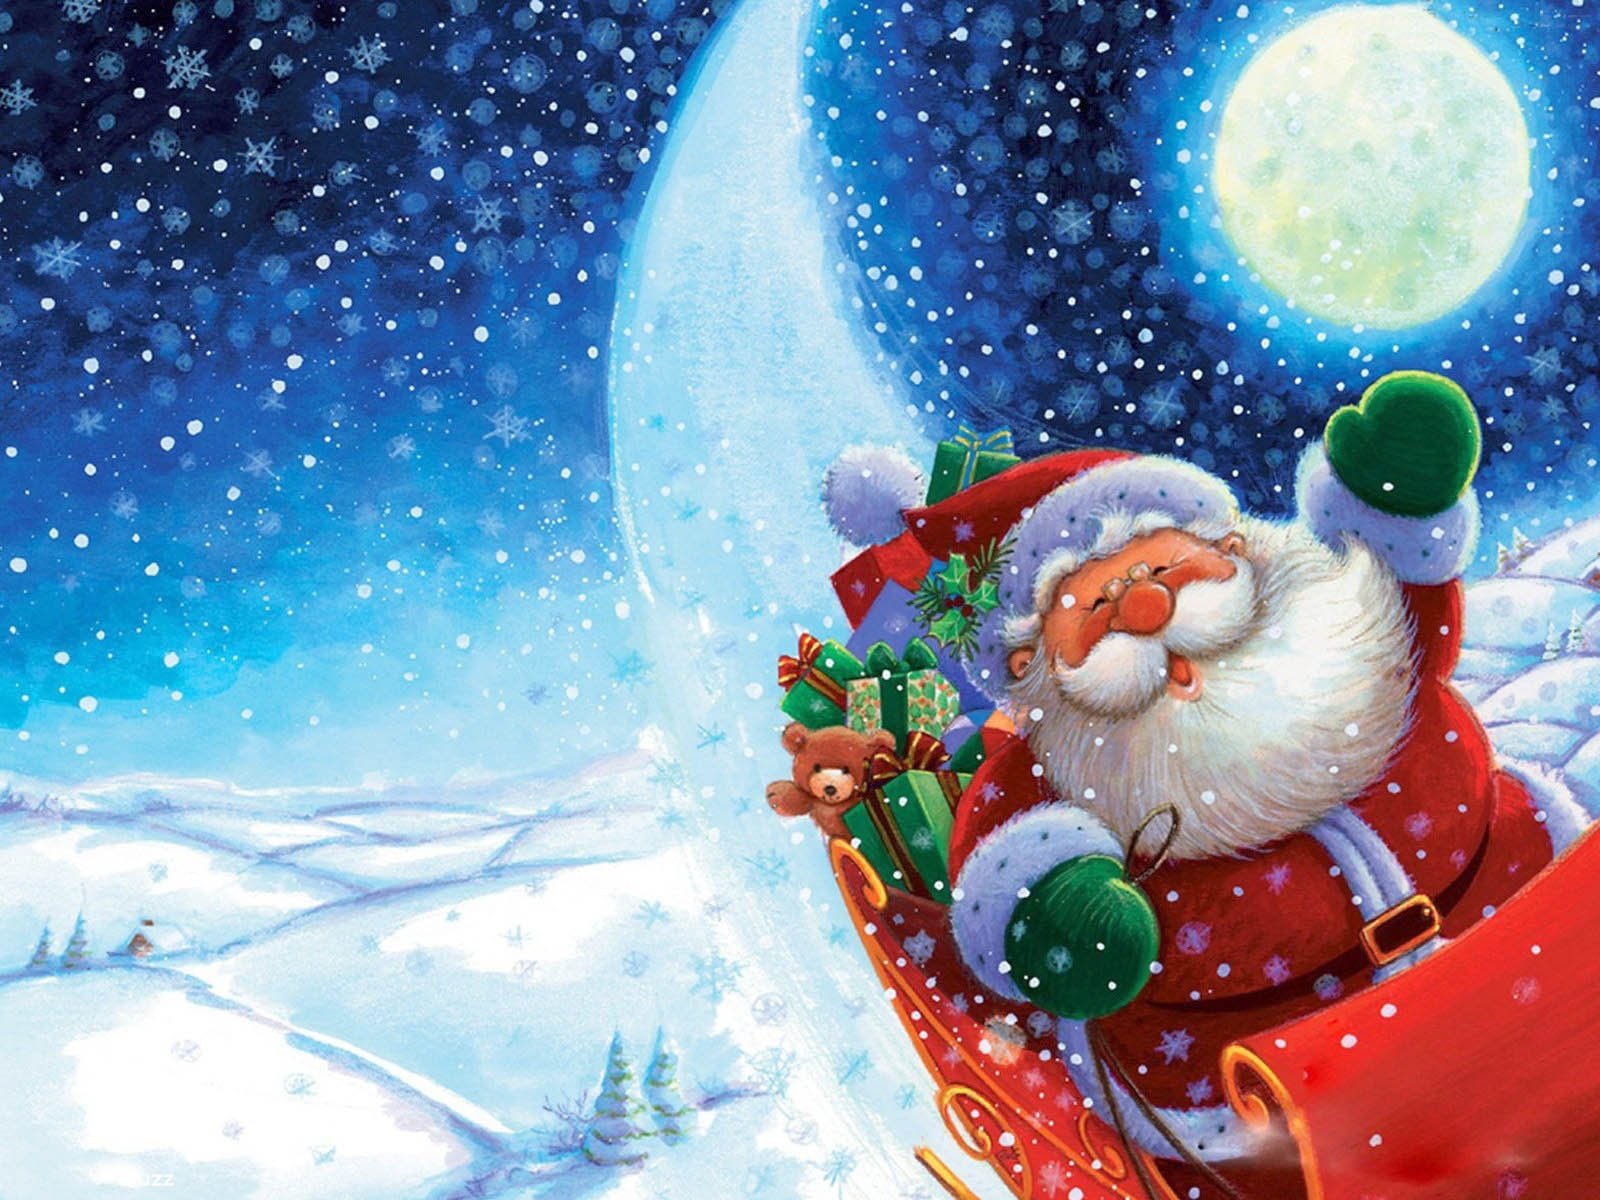 Funny Christmas wallpapers Christmas Wallpapers were very nice and 1600x1200